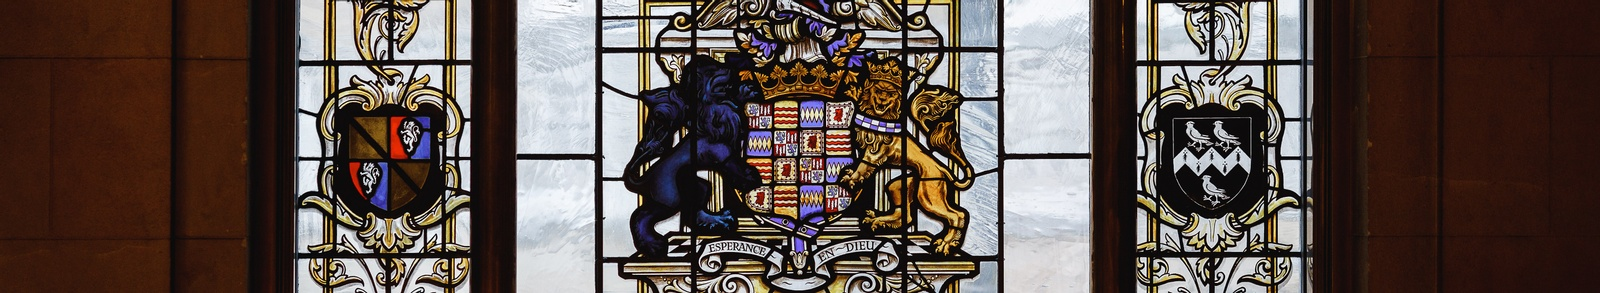 The Great Hall's Stained Glass banner